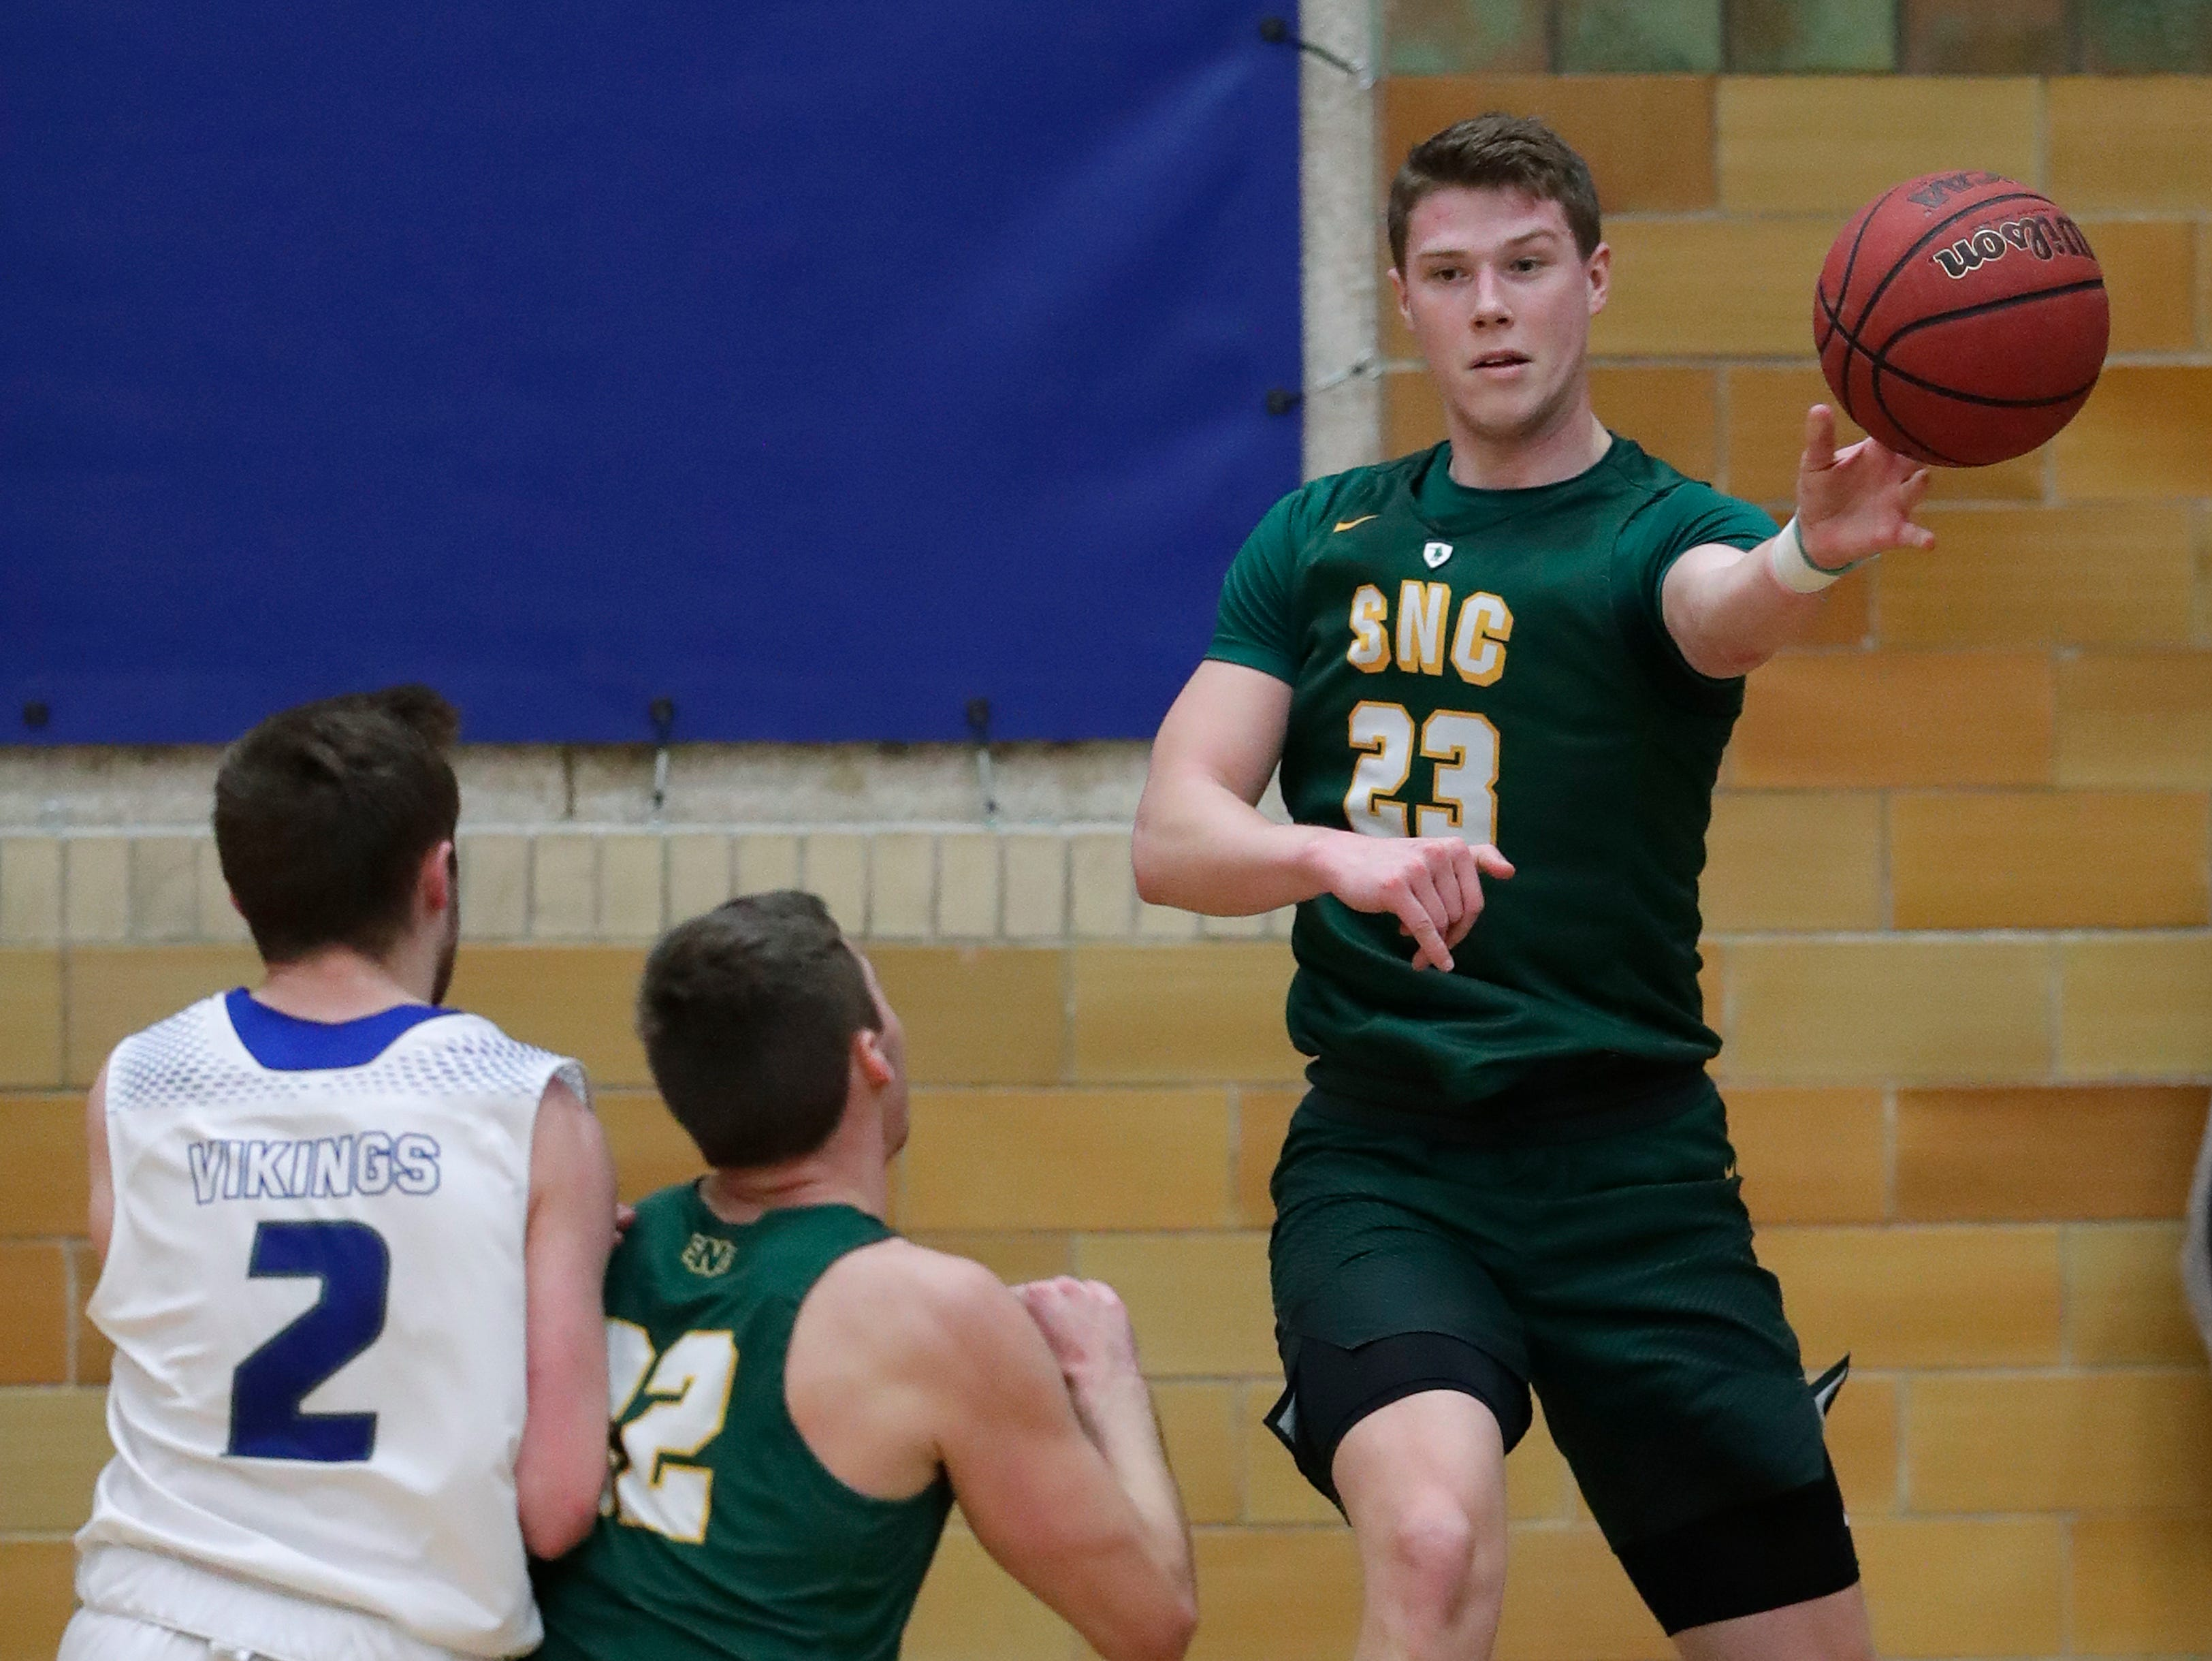 St. Norbert College's Drew Yetka (23) saves the ball from going out of bounds as he passes the ball to Wade Geenen (22) as Lawrence University's Quinn Fisher (2) defends during their men's basketball game Thursday, January 31, 2019, at Alexander Gymnasium in Appleton, Wis. 